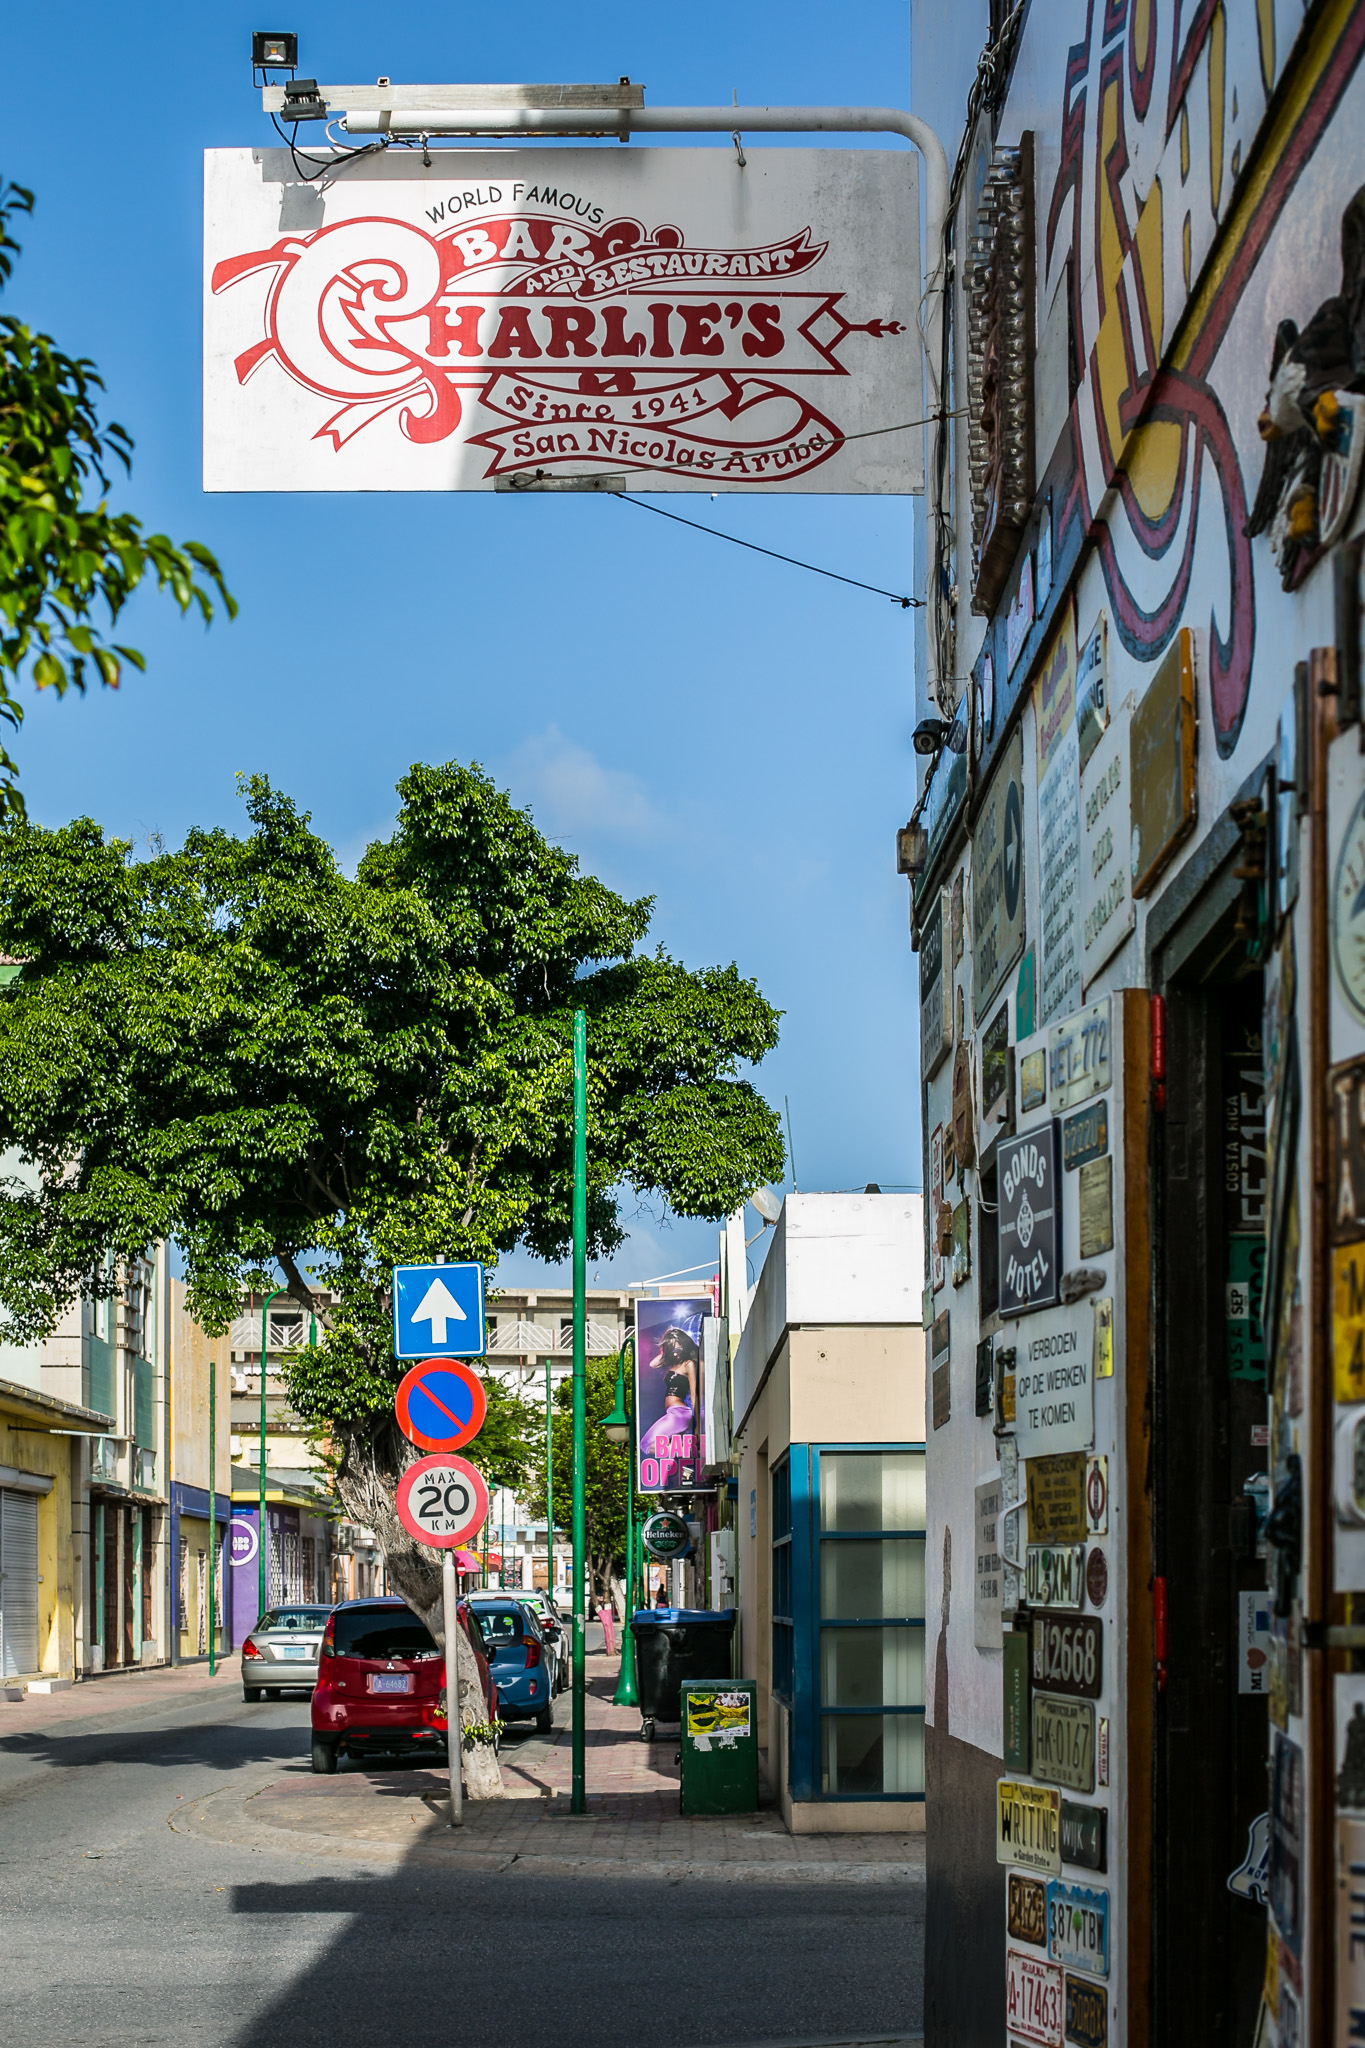 Charlies Bar in San Nicolas Aruba   It's a fun place to be if you get a chance to check it out. In a seedy area so maybe earlier in the day is best, depending on what your into...